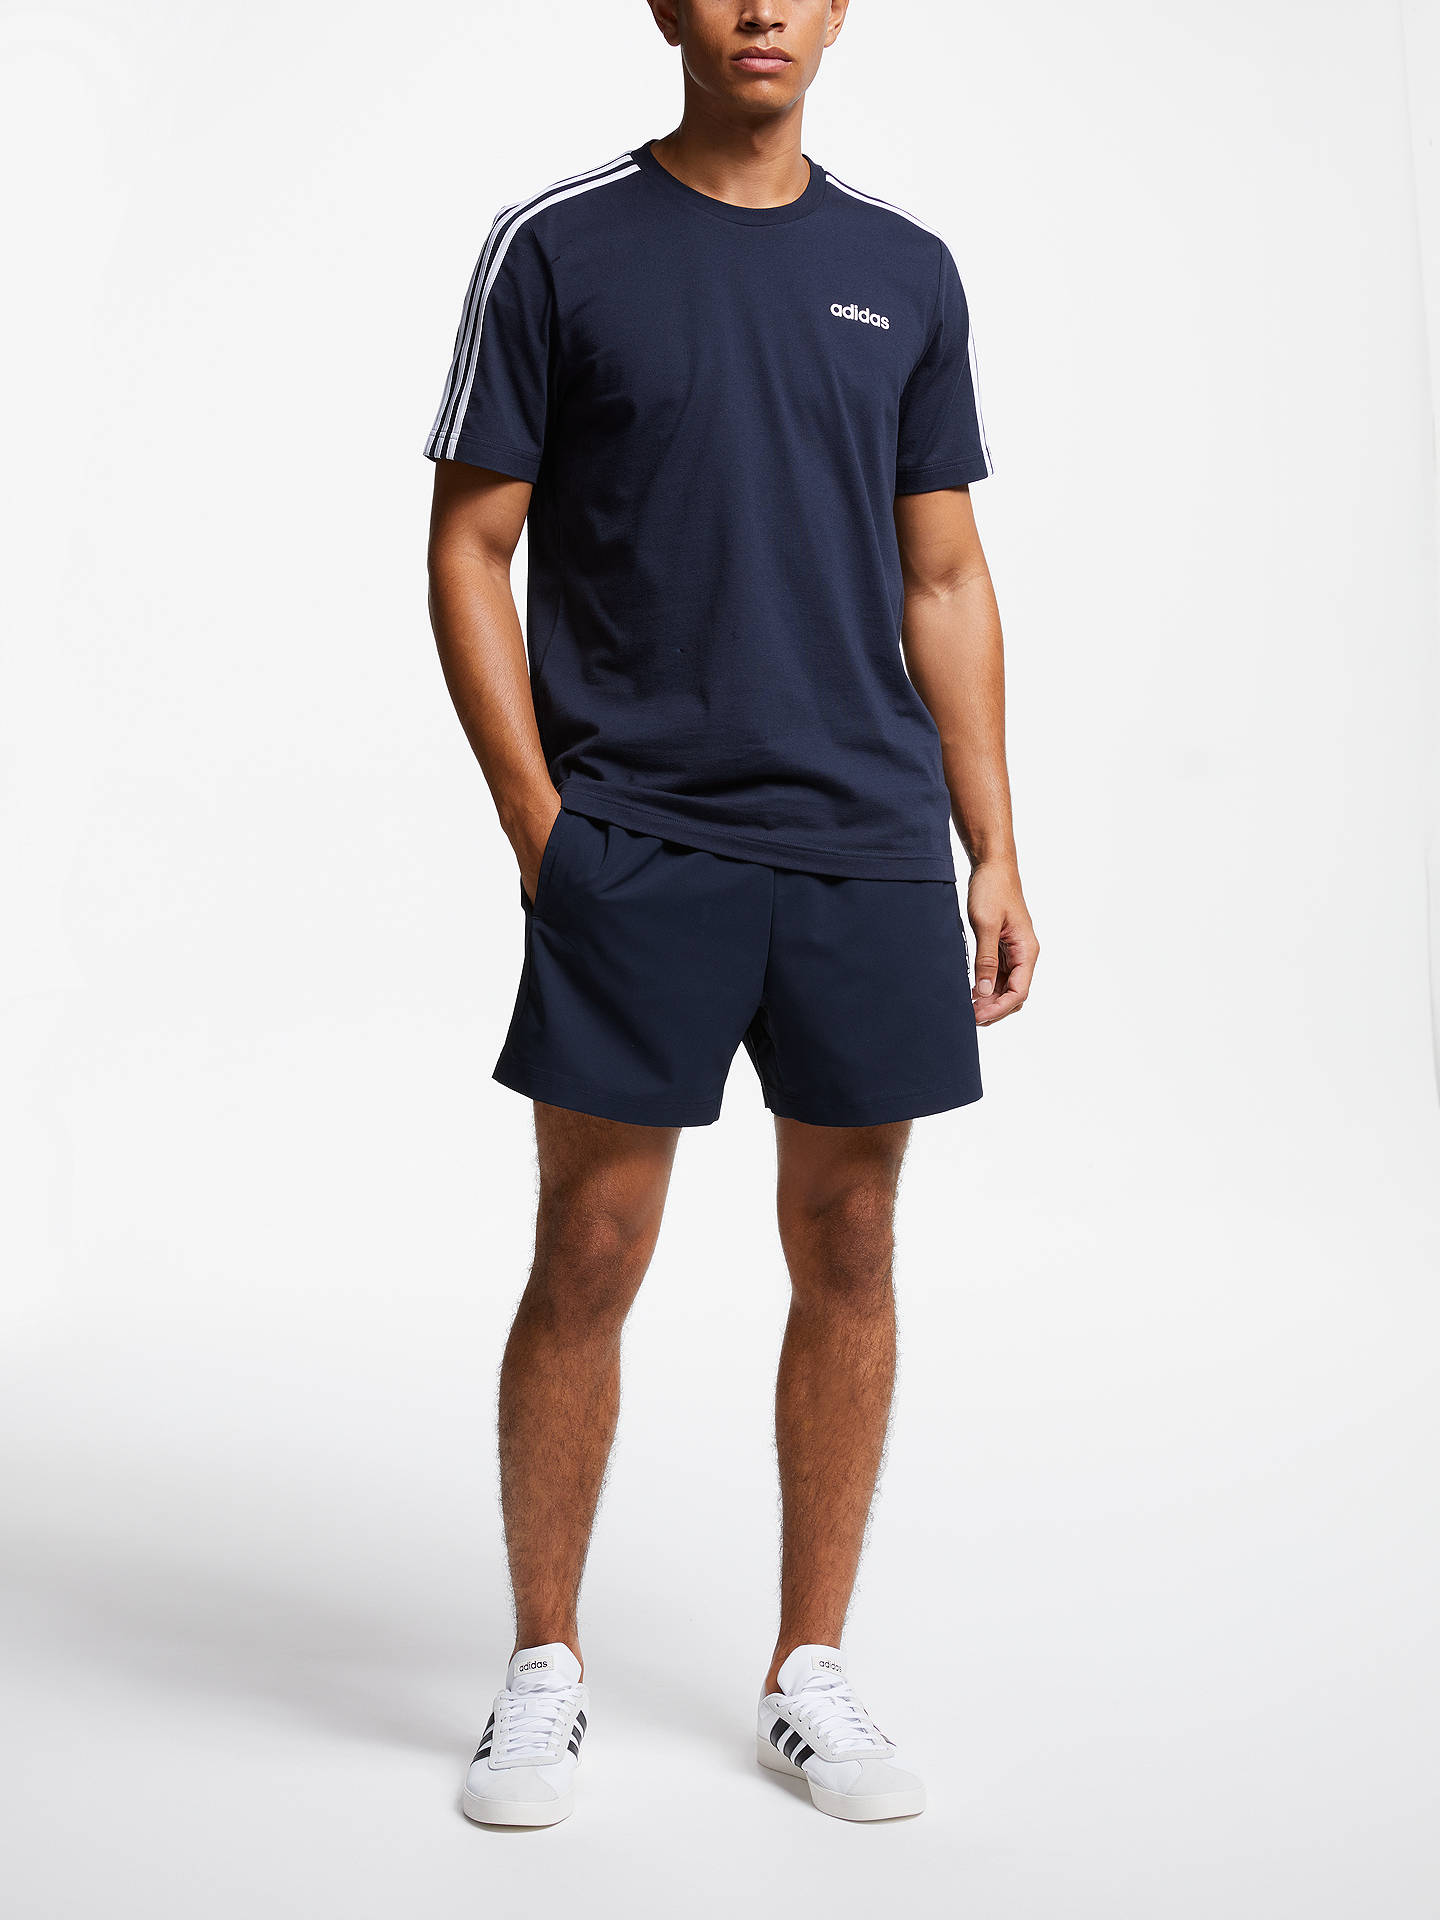 Buyadidas Essentials Chelsea Shorts, Legend Ink, S Online at johnlewis.com